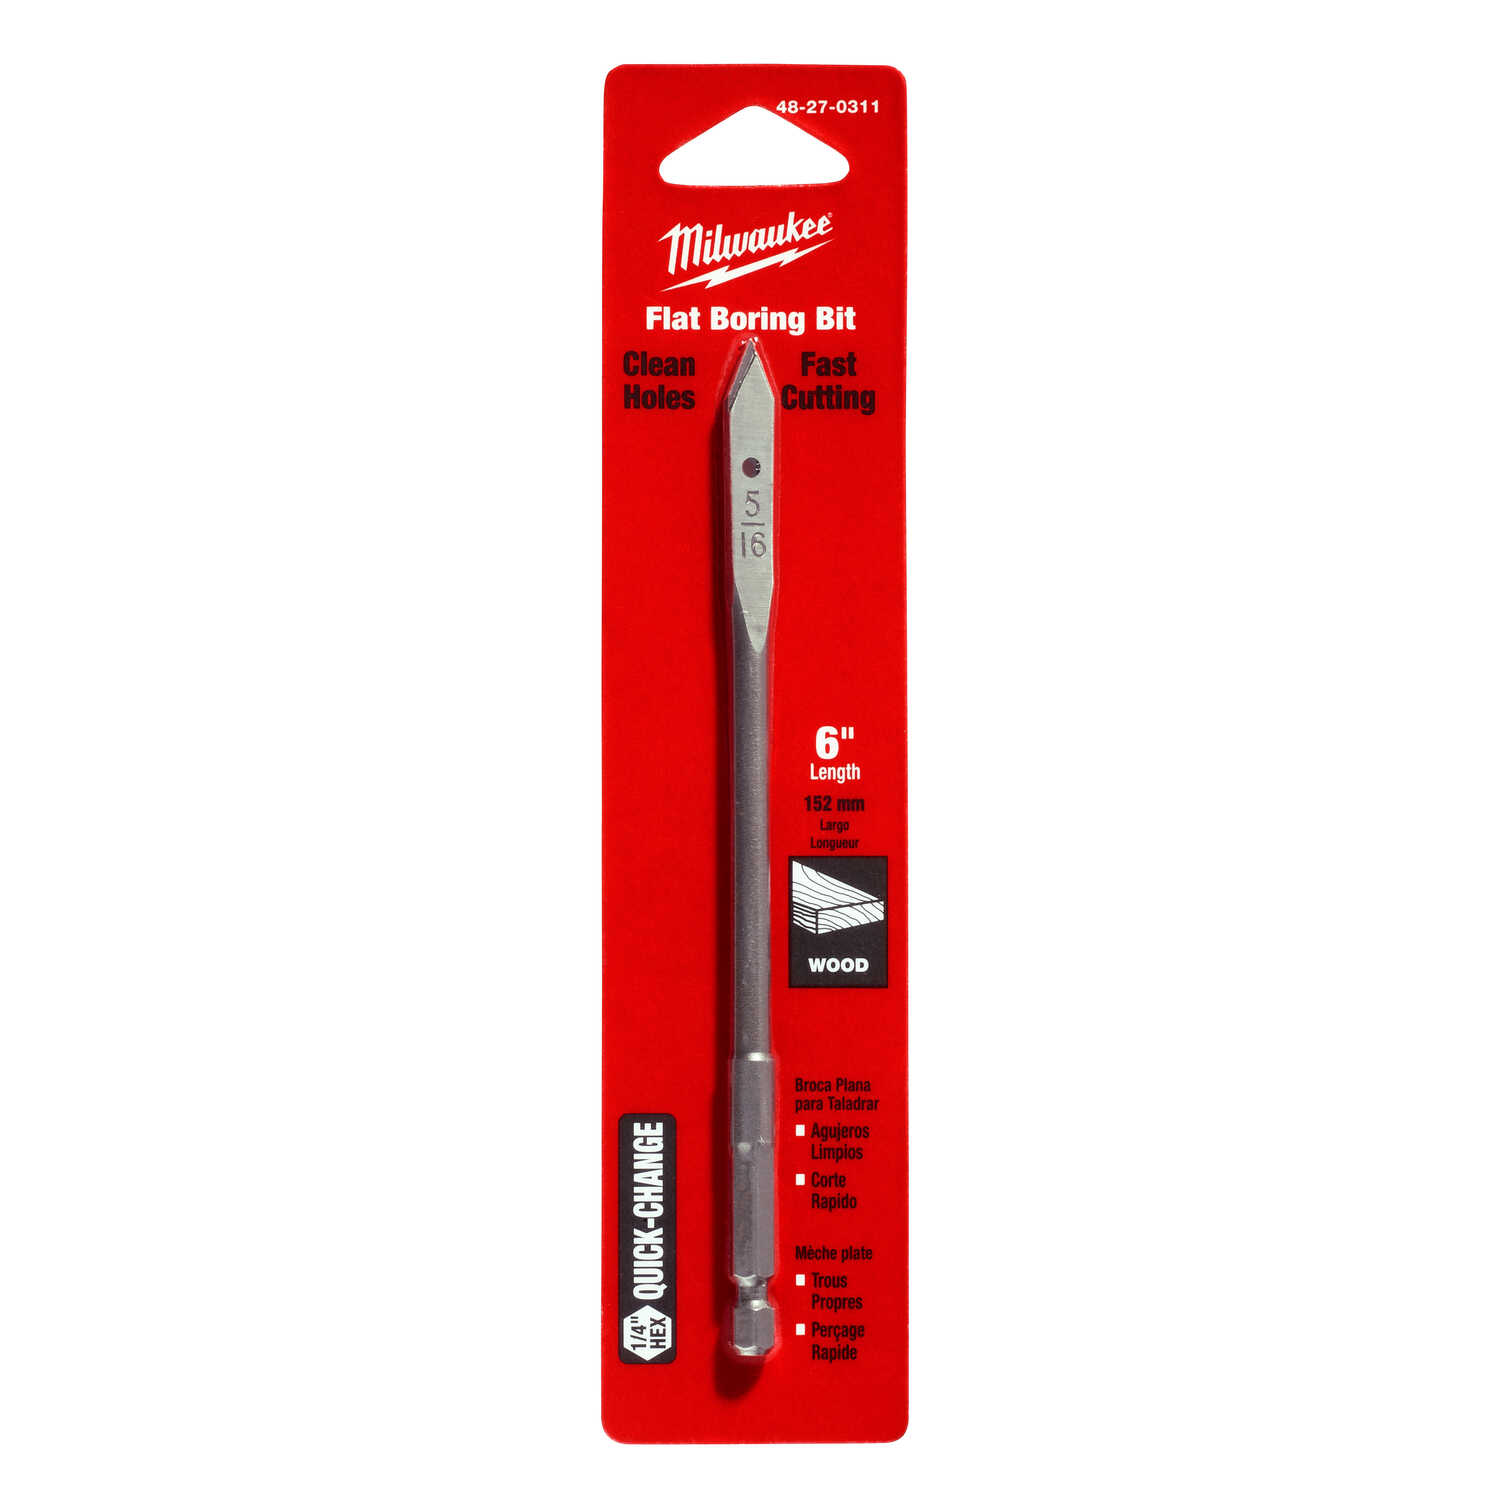 Milwaukee  5/16 in. Dia. x 6 in. L Flat Boring  Auger Bit  Carbon Steel  1/4 in. Hex Shank  1 pc.